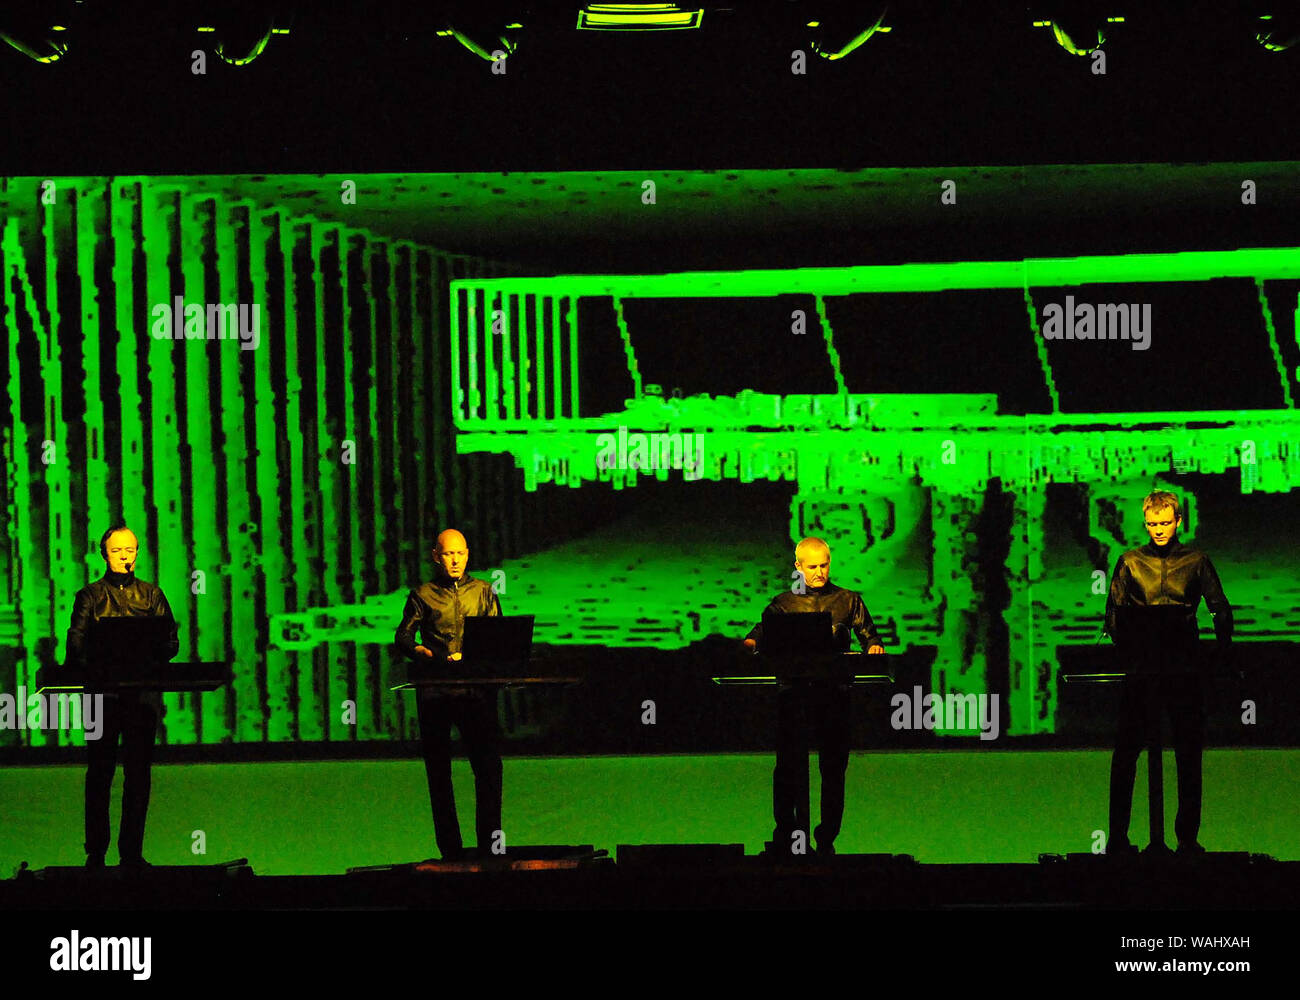 Rio de Janeiro, Brazil, March 20, 2009. Members of the German band Kraftwerk during their show in the Apoteose Square in the city of Rio de Janeiro. Stock Photo